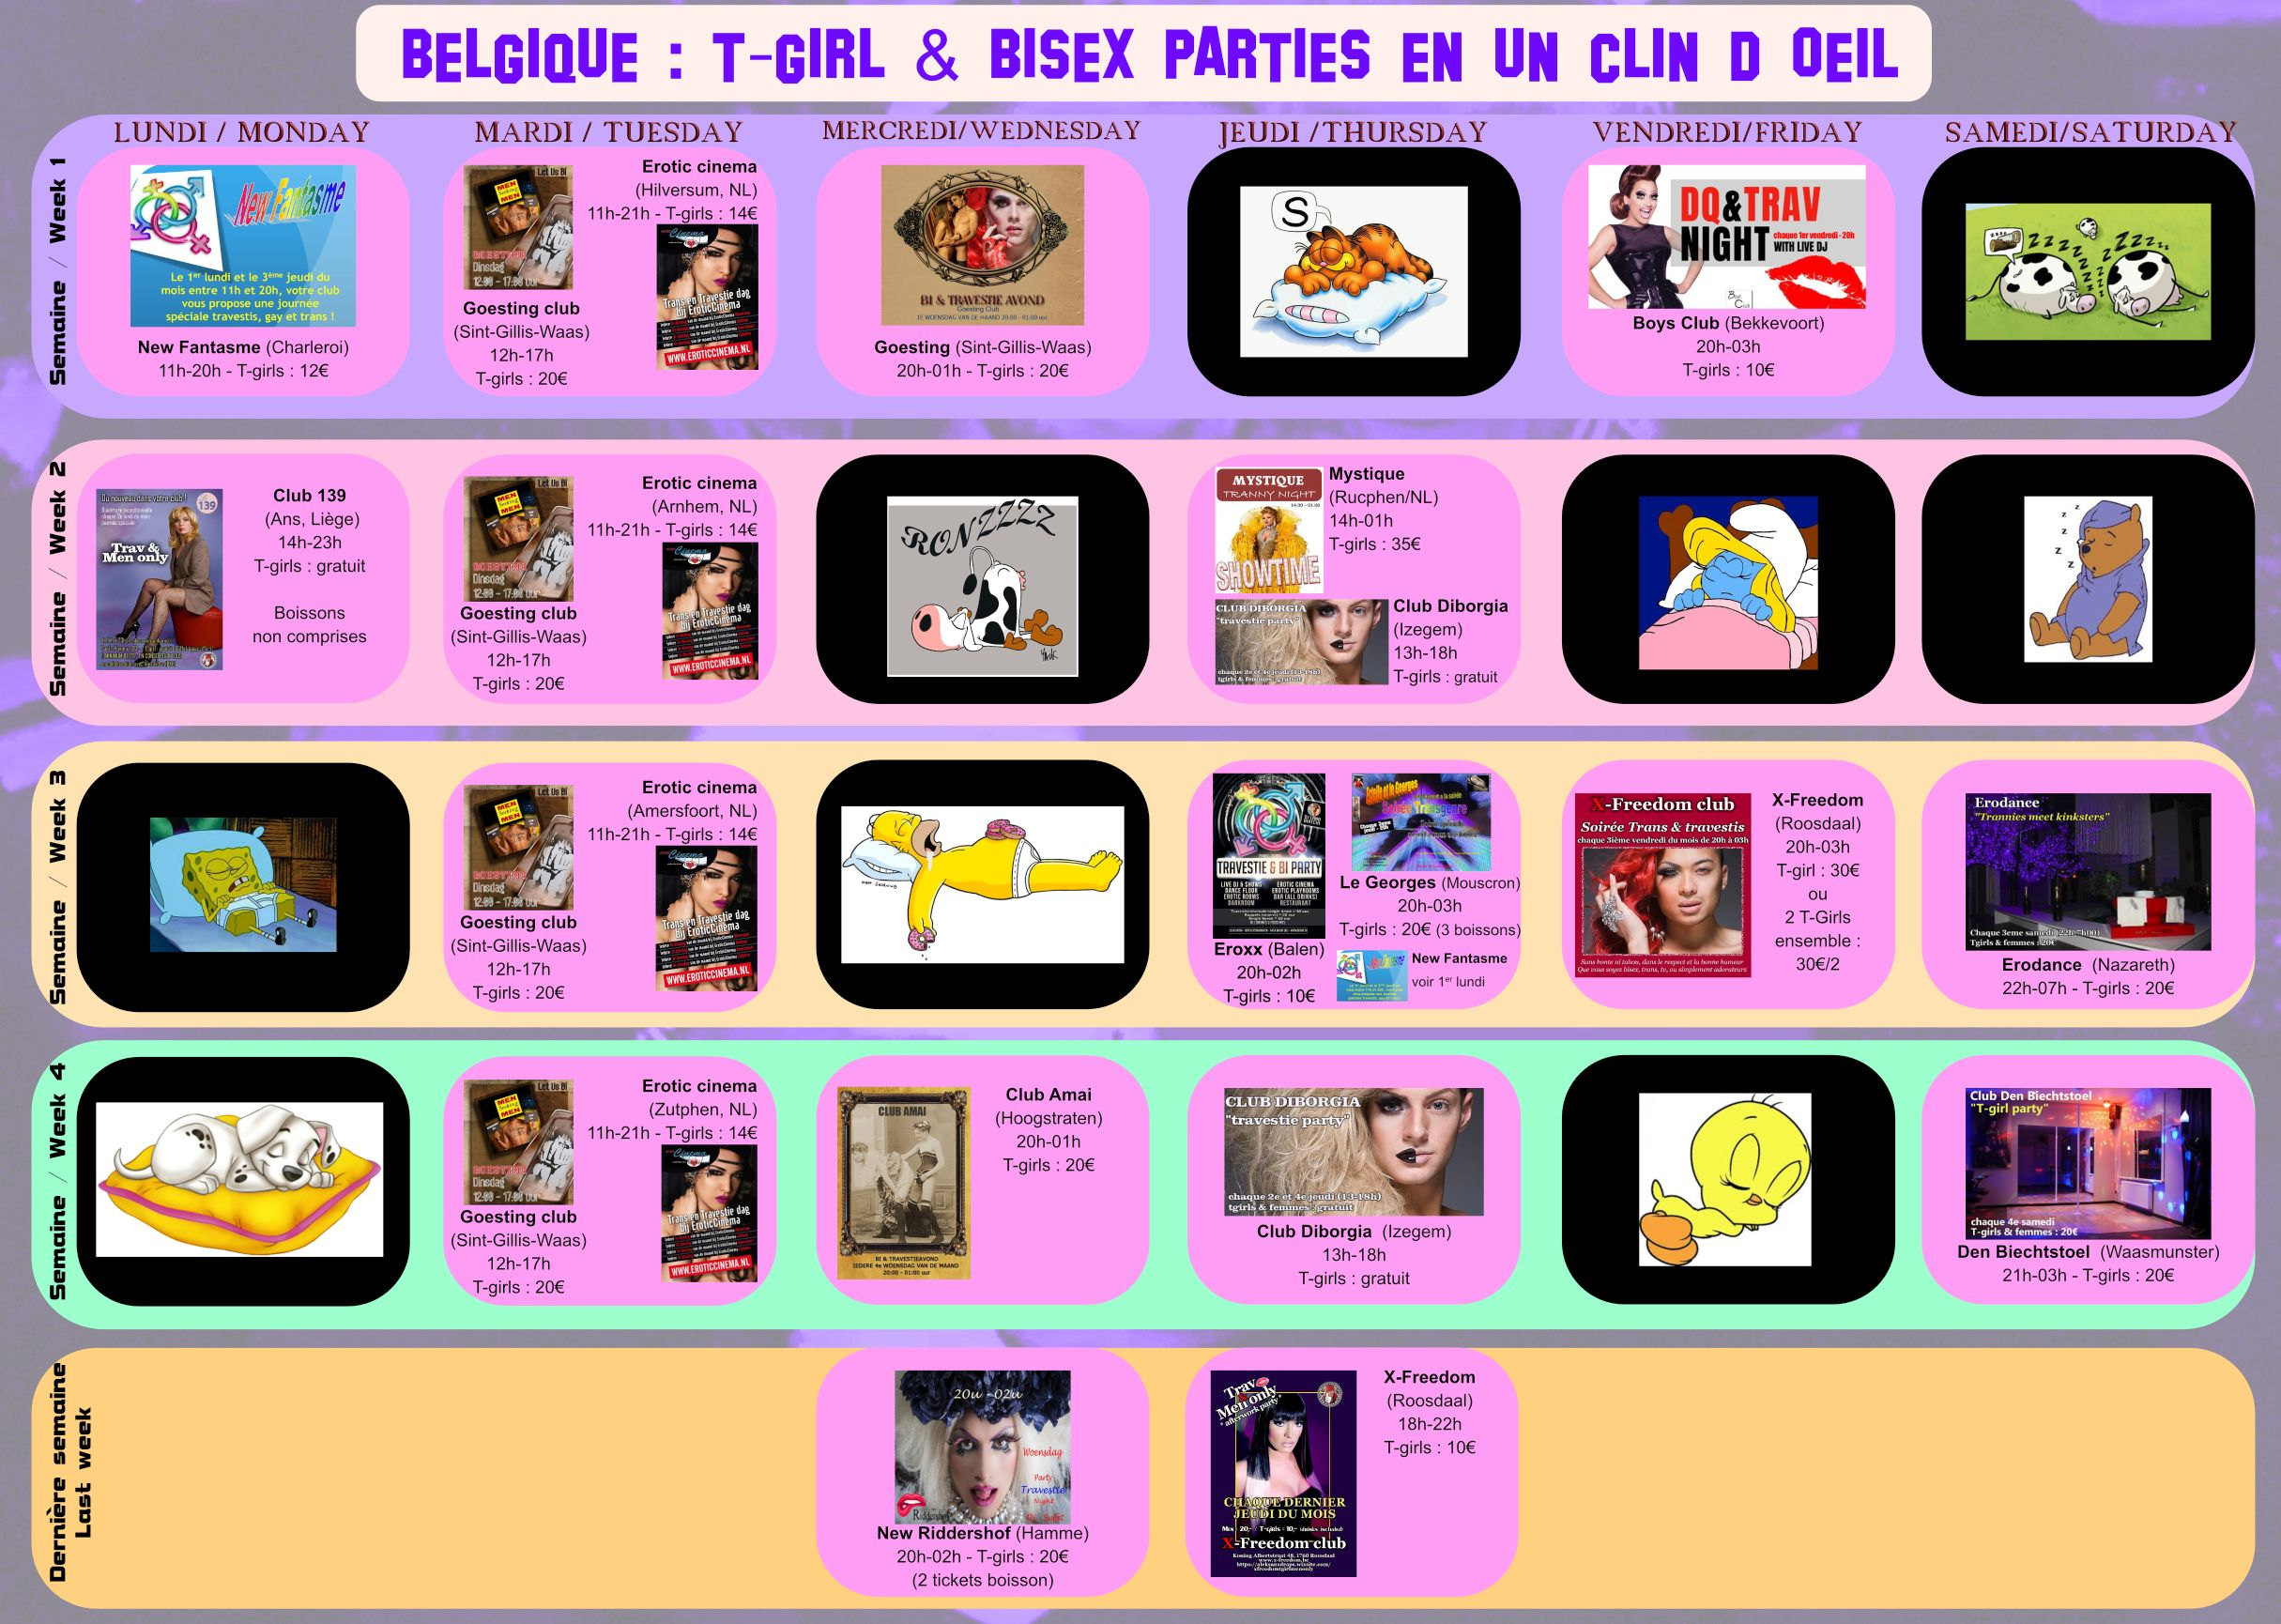 Calendrier tgirl parties